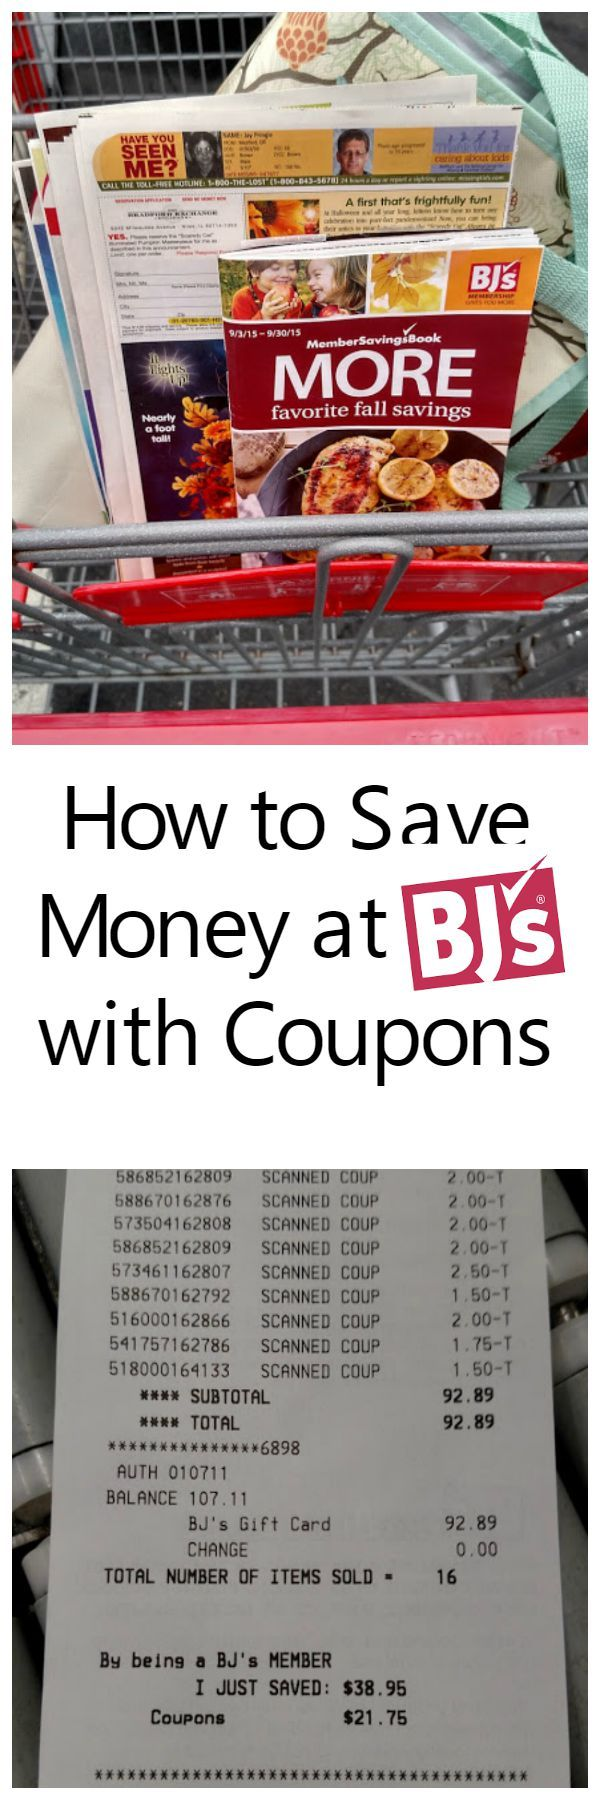 How to save money with coupons at bj s